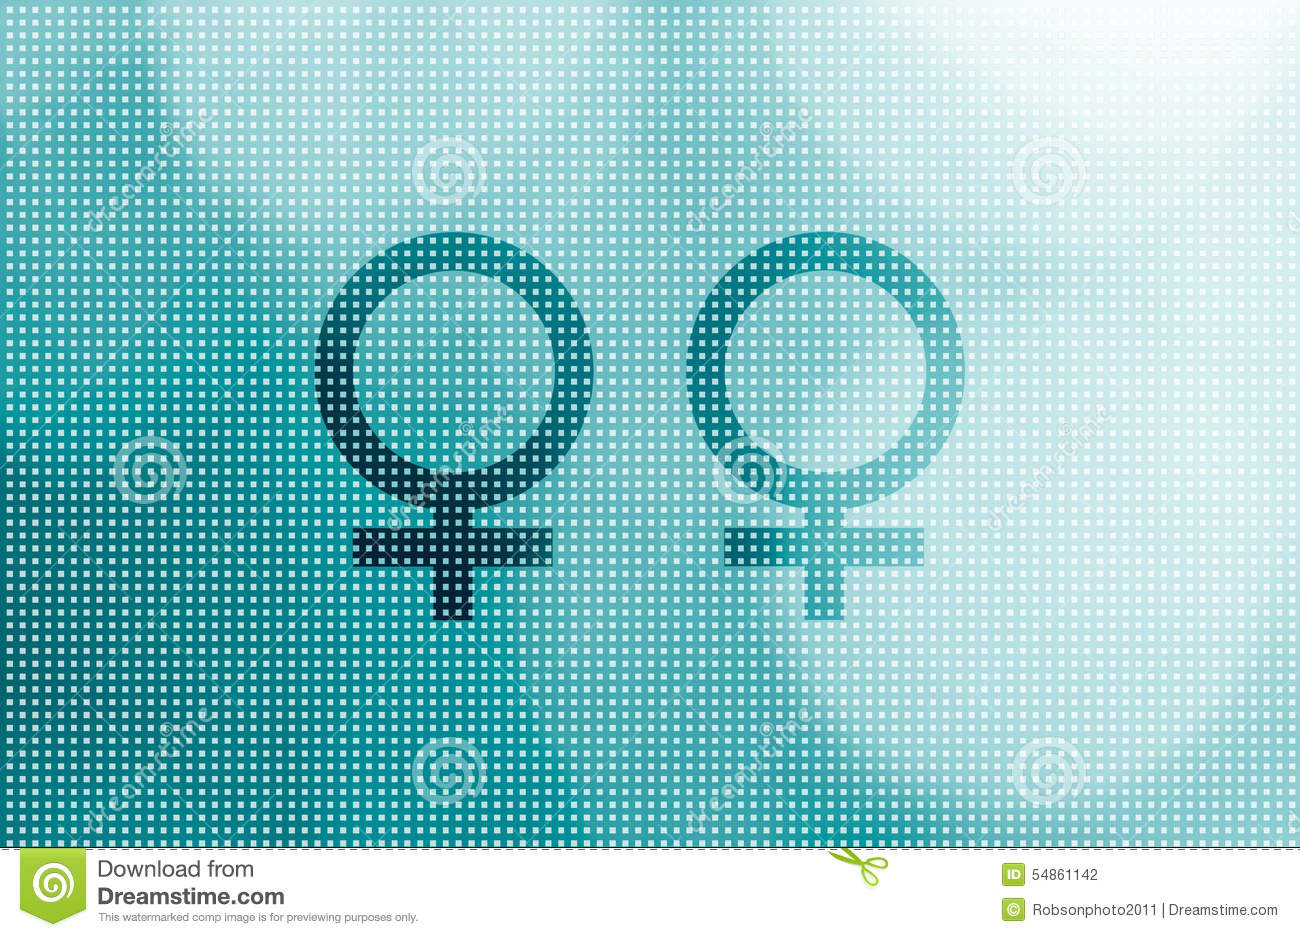 Two female symbols gallery symbol and sign ideas two female symbols representing gay relationship stock two female symbols representing gay relationship buycottarizona buycottarizona